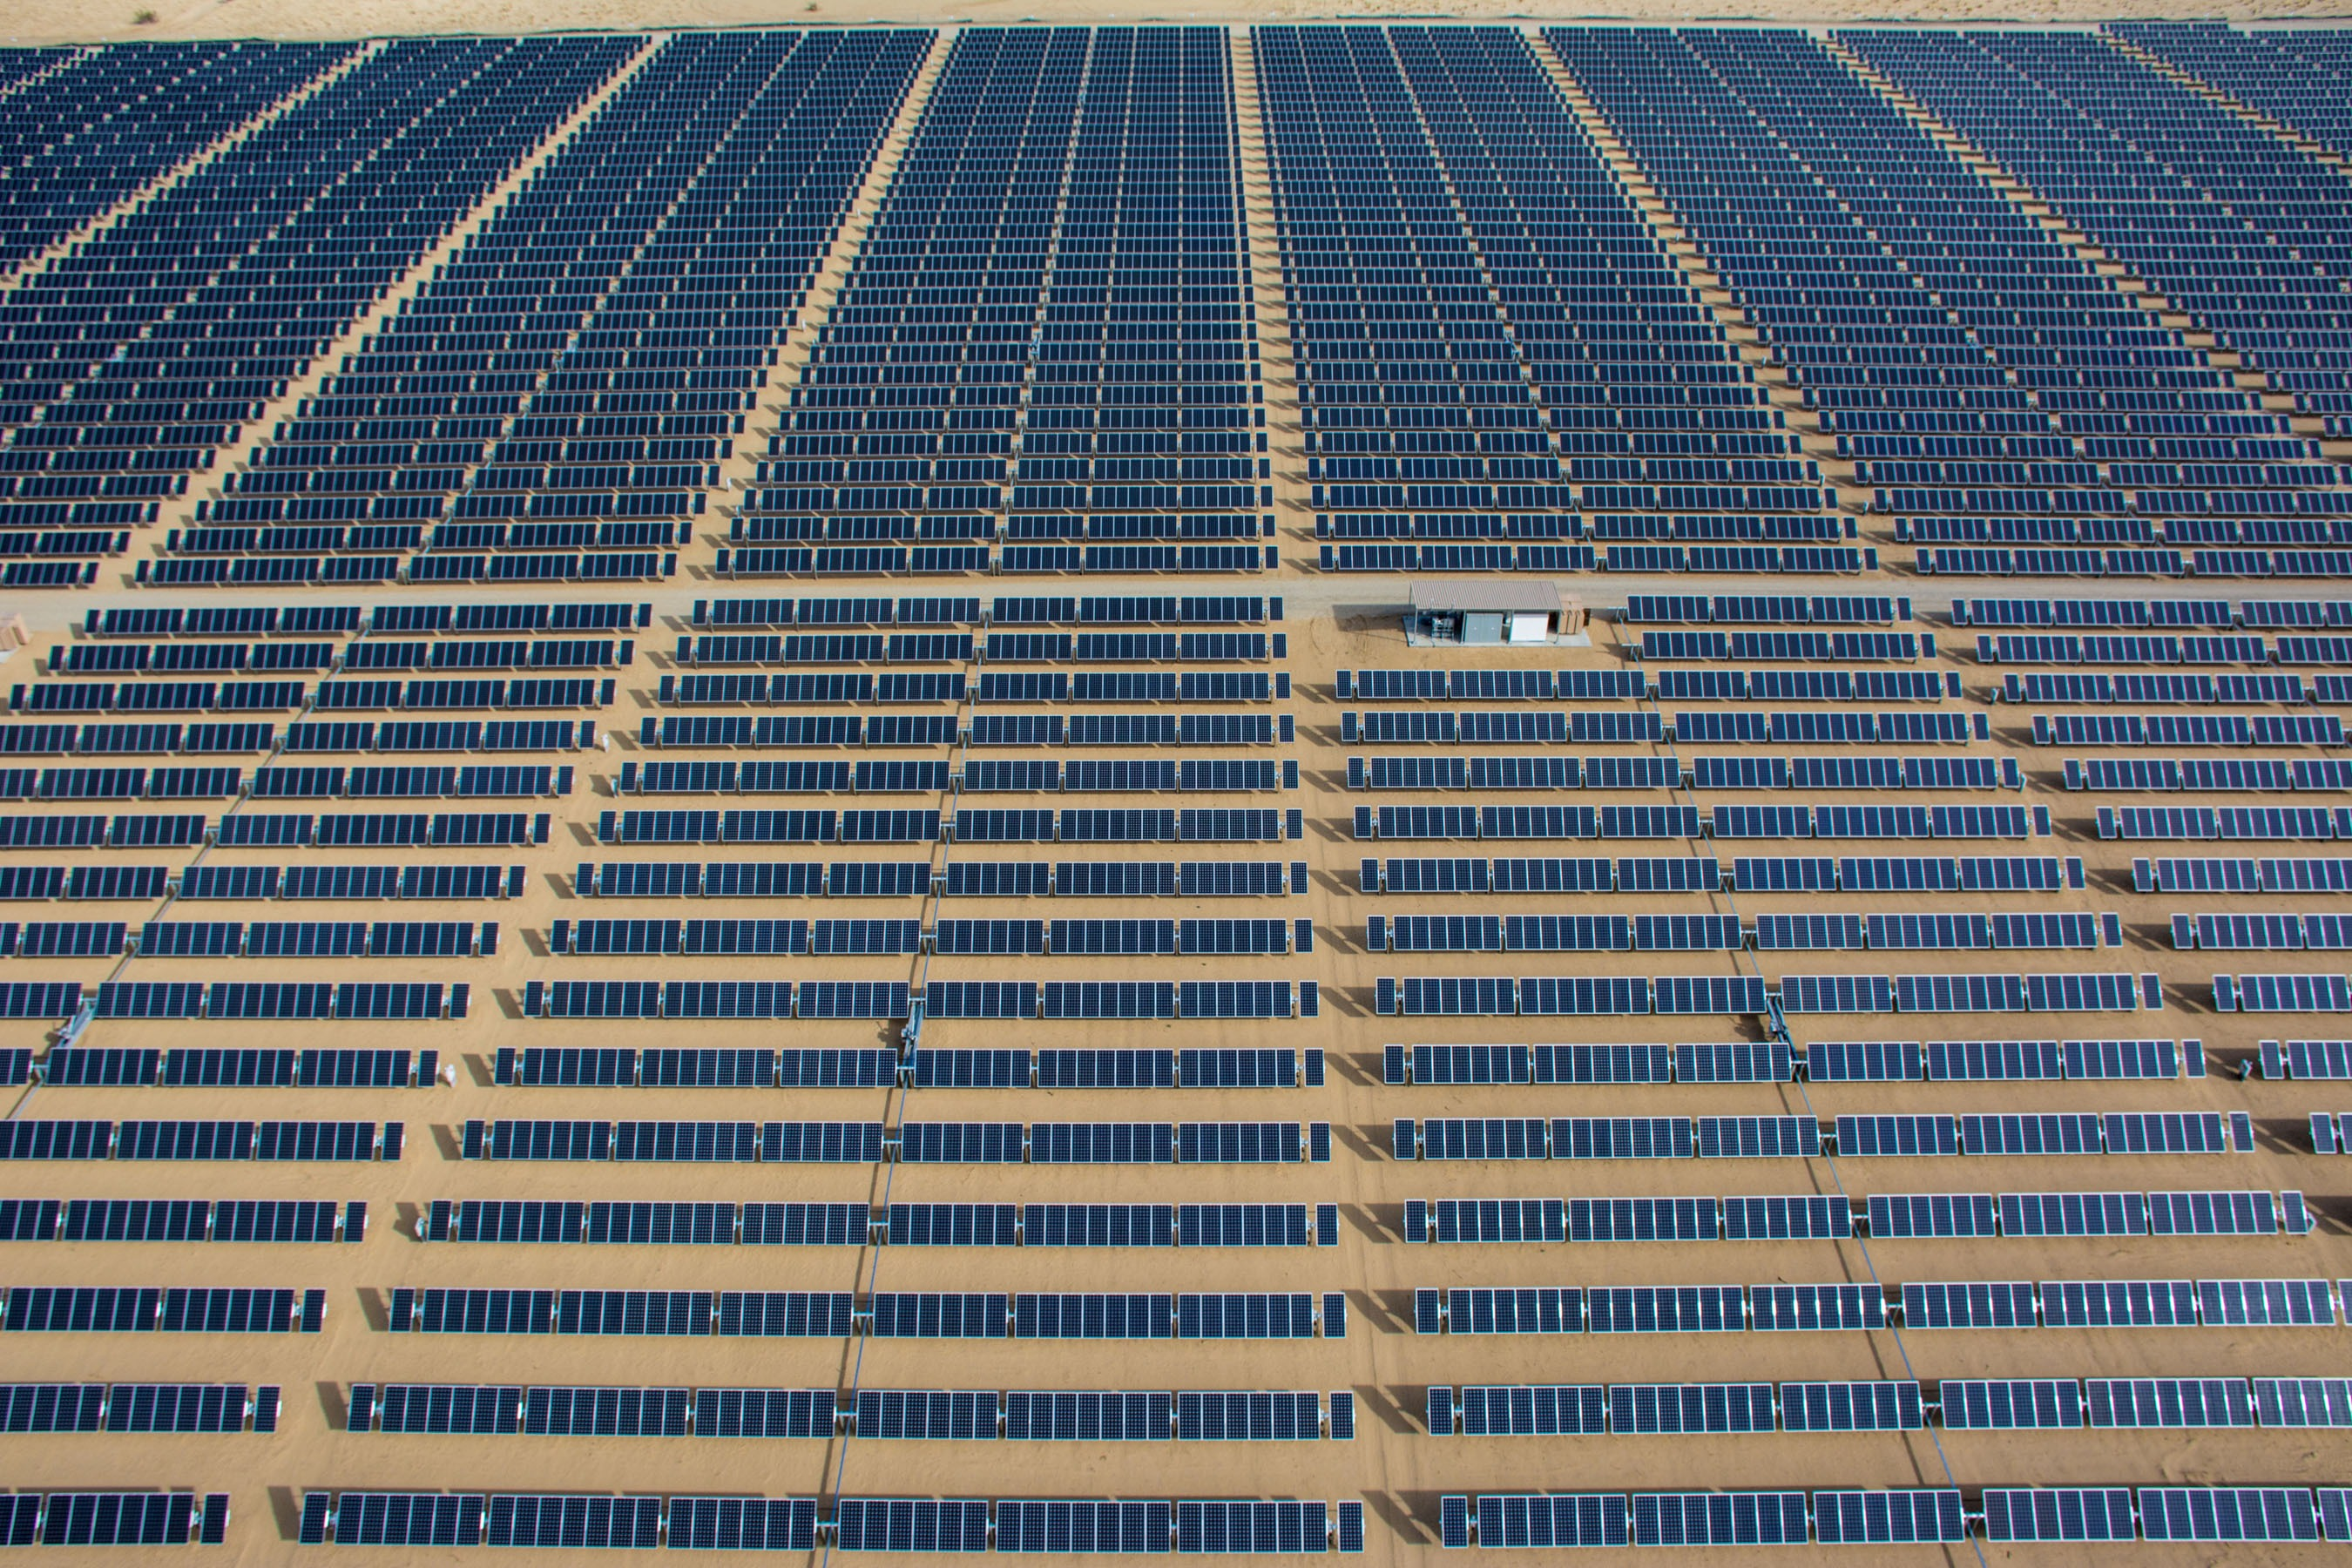 A solar plant constructed by SunEdison in California